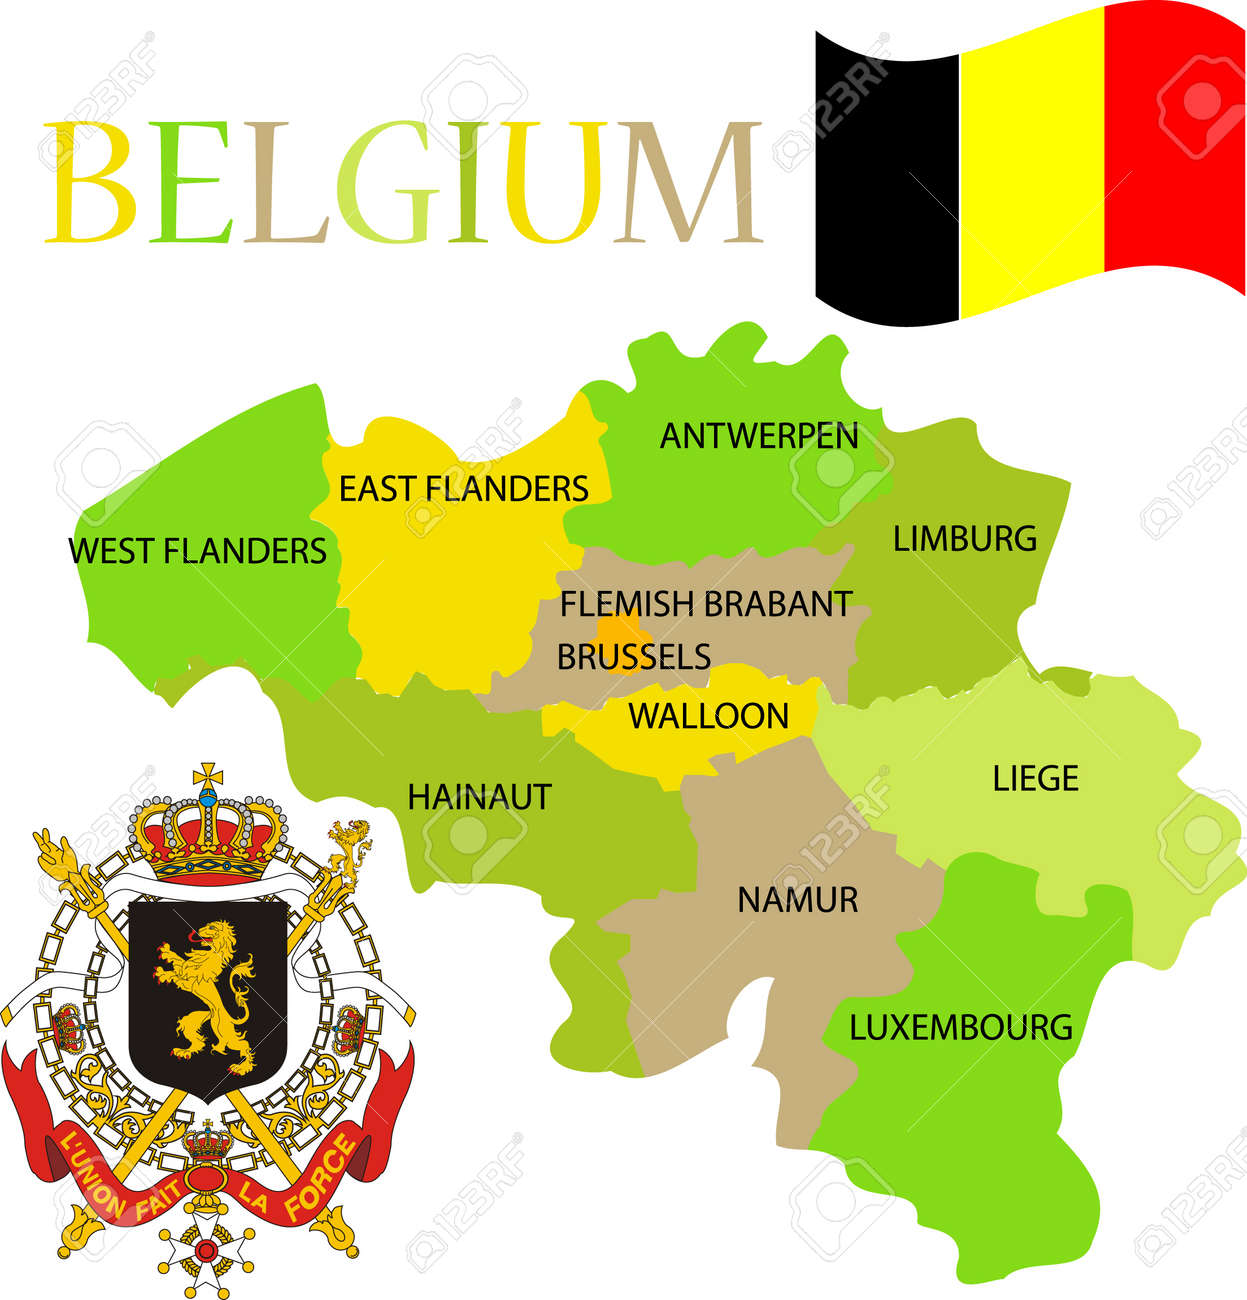 Map Of Belgium With Its Provinces Flag And Coat Of Arm Royalty - Belgium regions map